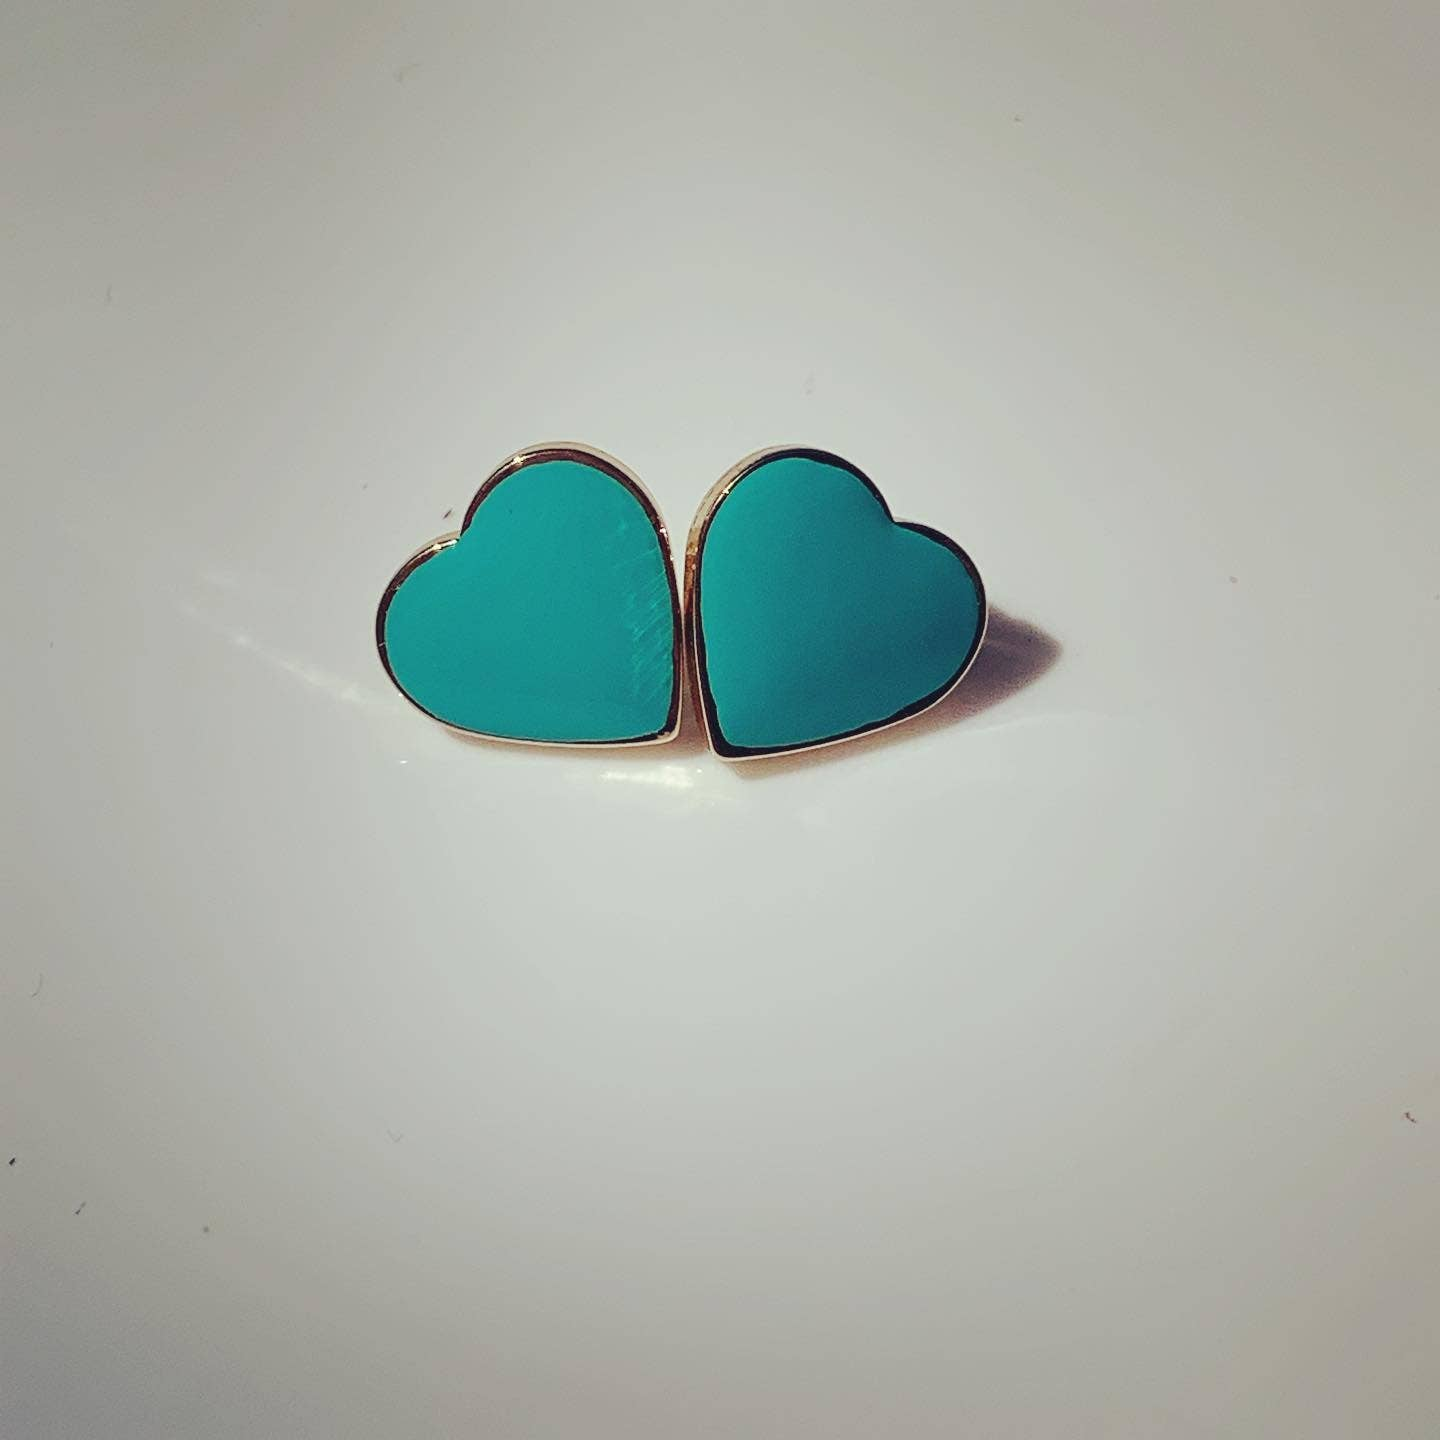 Koko & Lola Forever Robin Egg Blue Heart Solid Earrings - Liz & addie